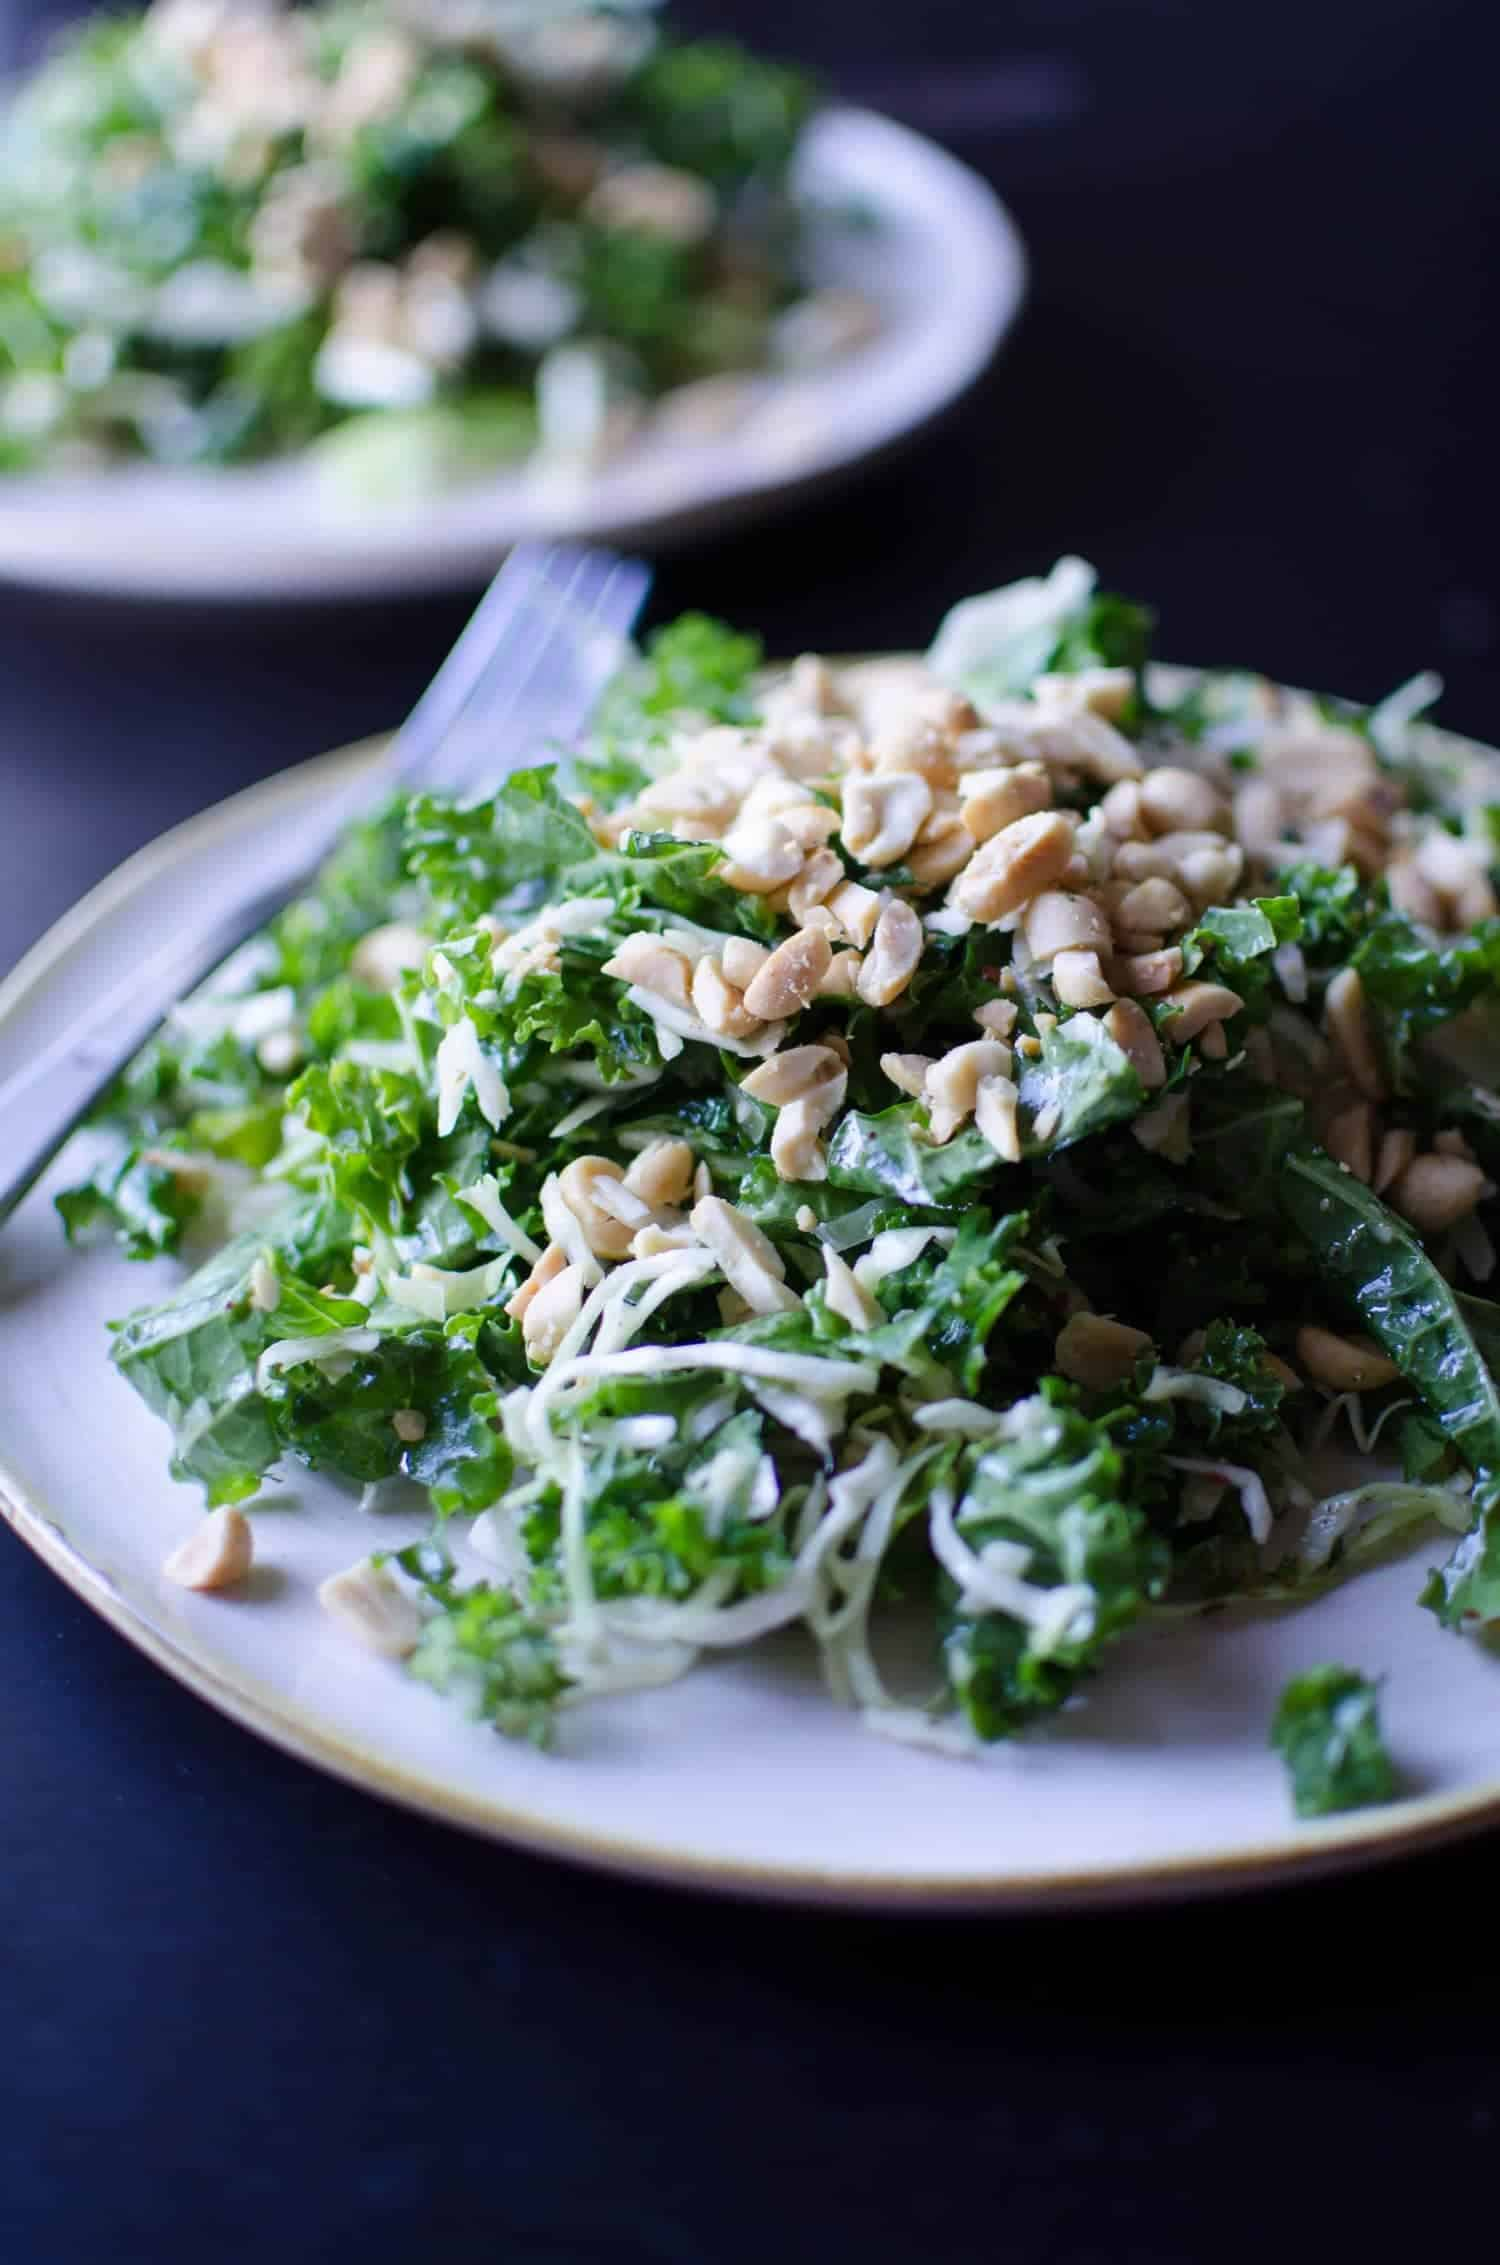 Cabbage And Lime Salad With Roasted Peanuts Recipes — Dishmaps